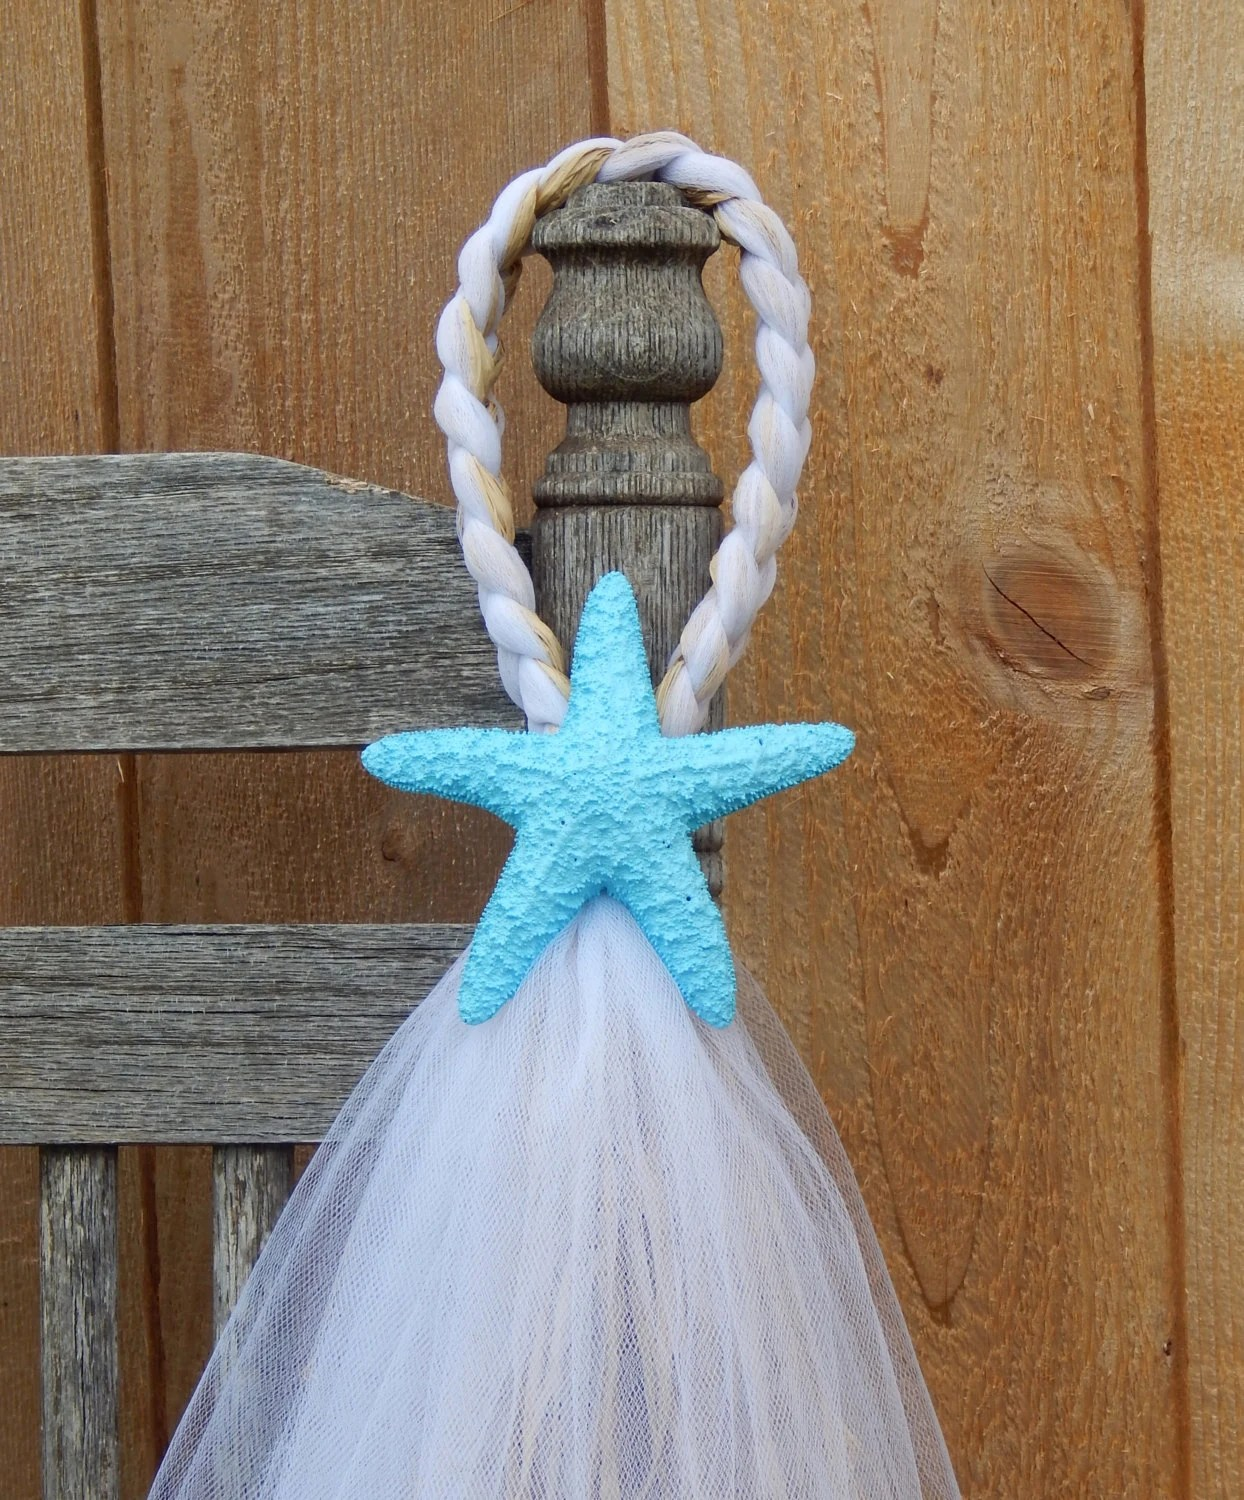 starfish wedding chair decorations embassy high tulle and raffia hangers painted pew bow